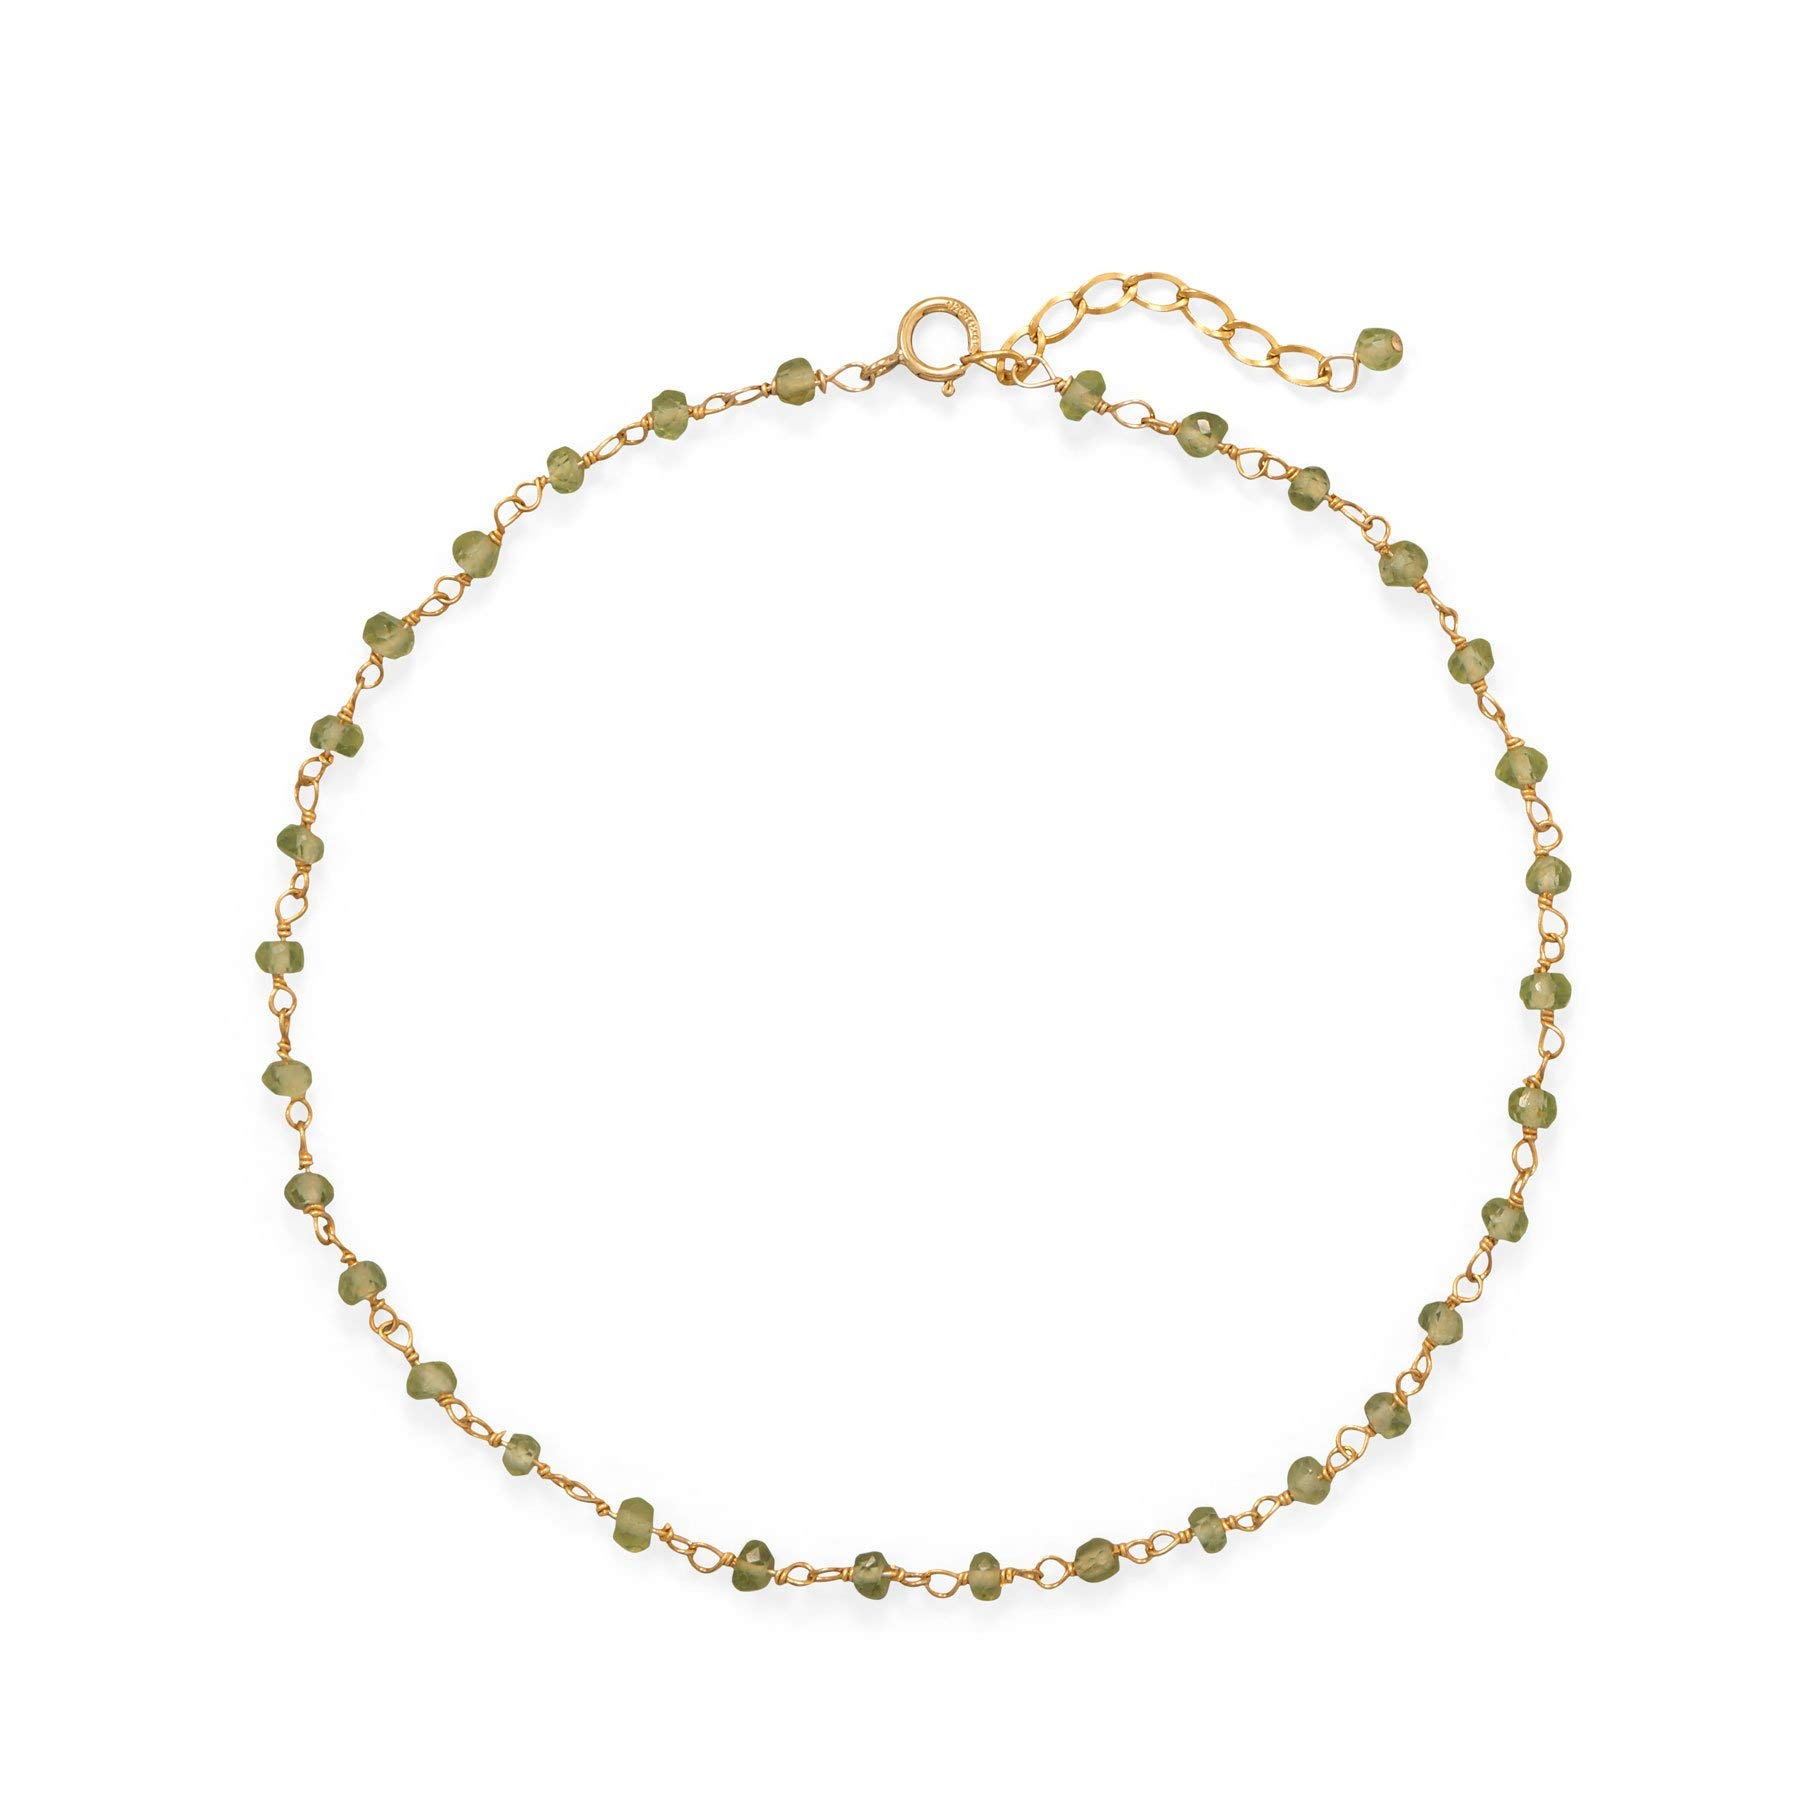 Precious Stars Jewelry 14k Gold Plated Sterling Silver Green Peridot Anklet